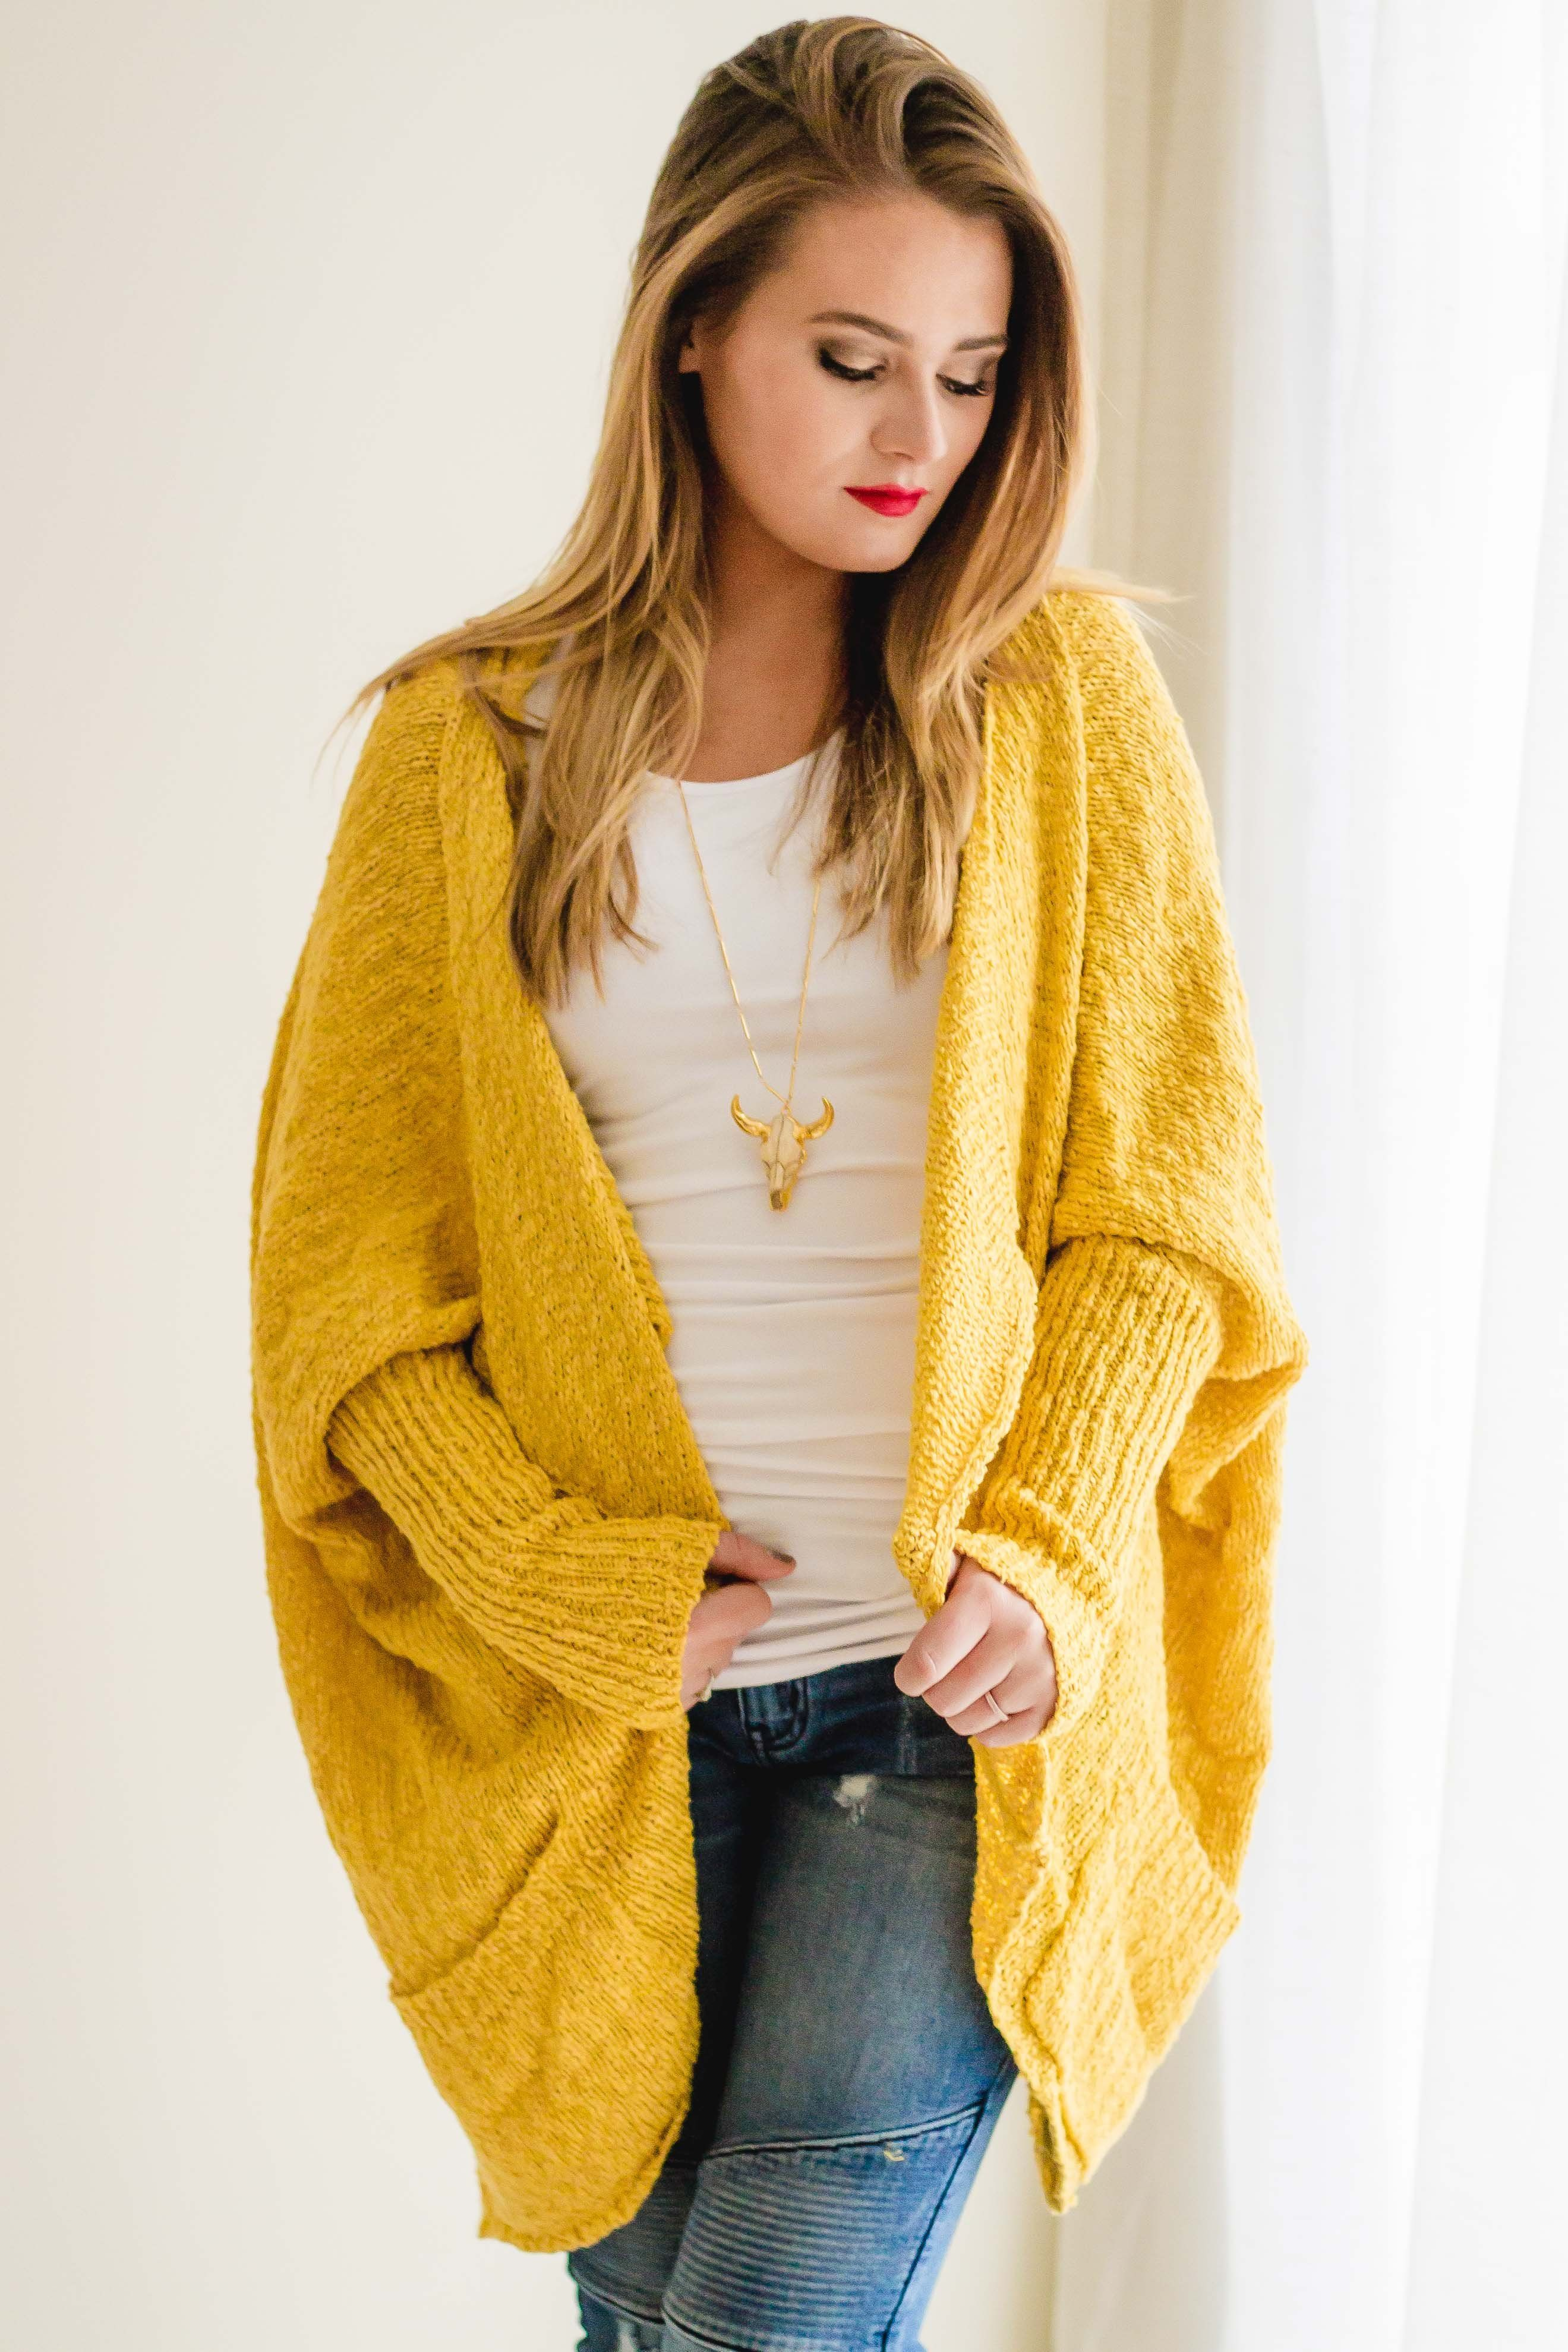 Sunny Cable Knit Cardigan | Mustard | Cable knit cardigan, Cable ...